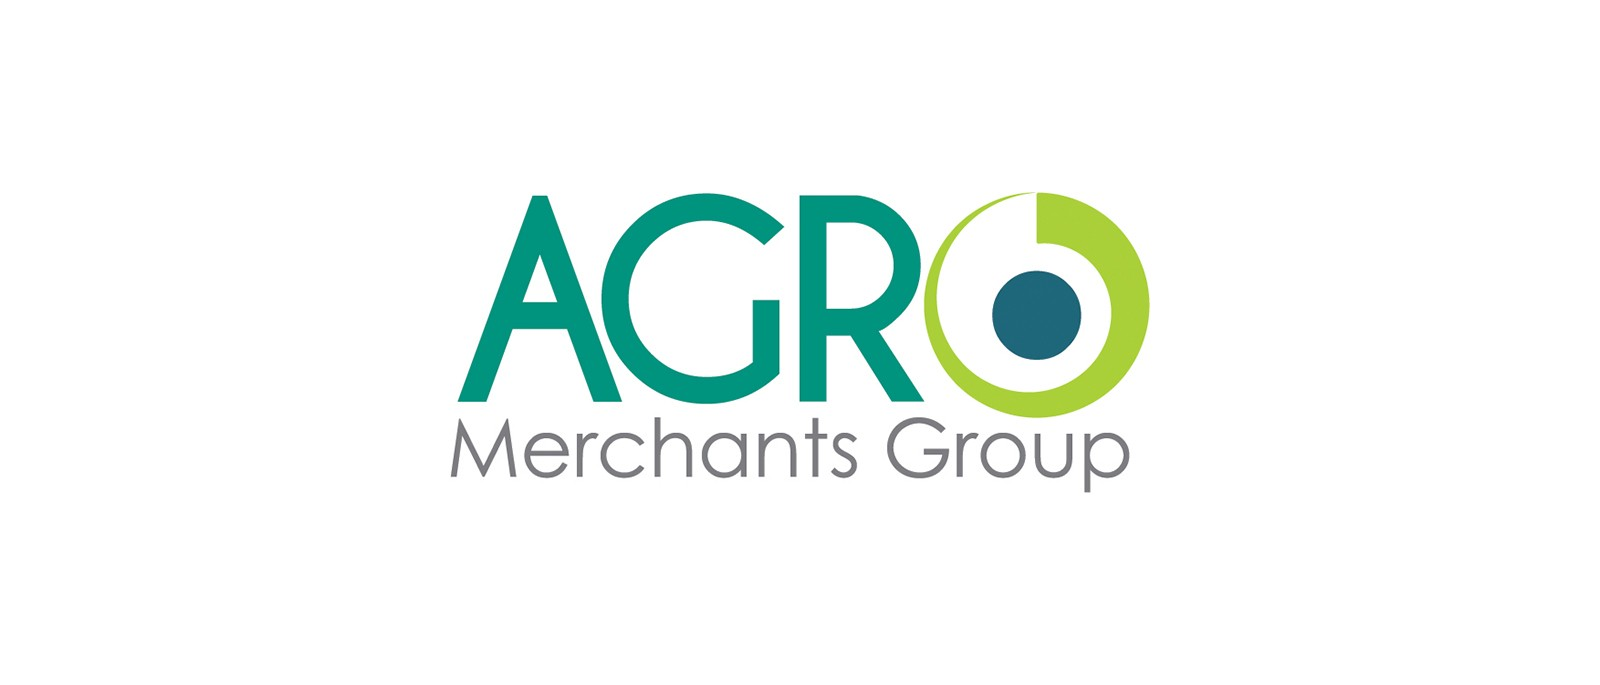 All aboard with AGRO Merchants